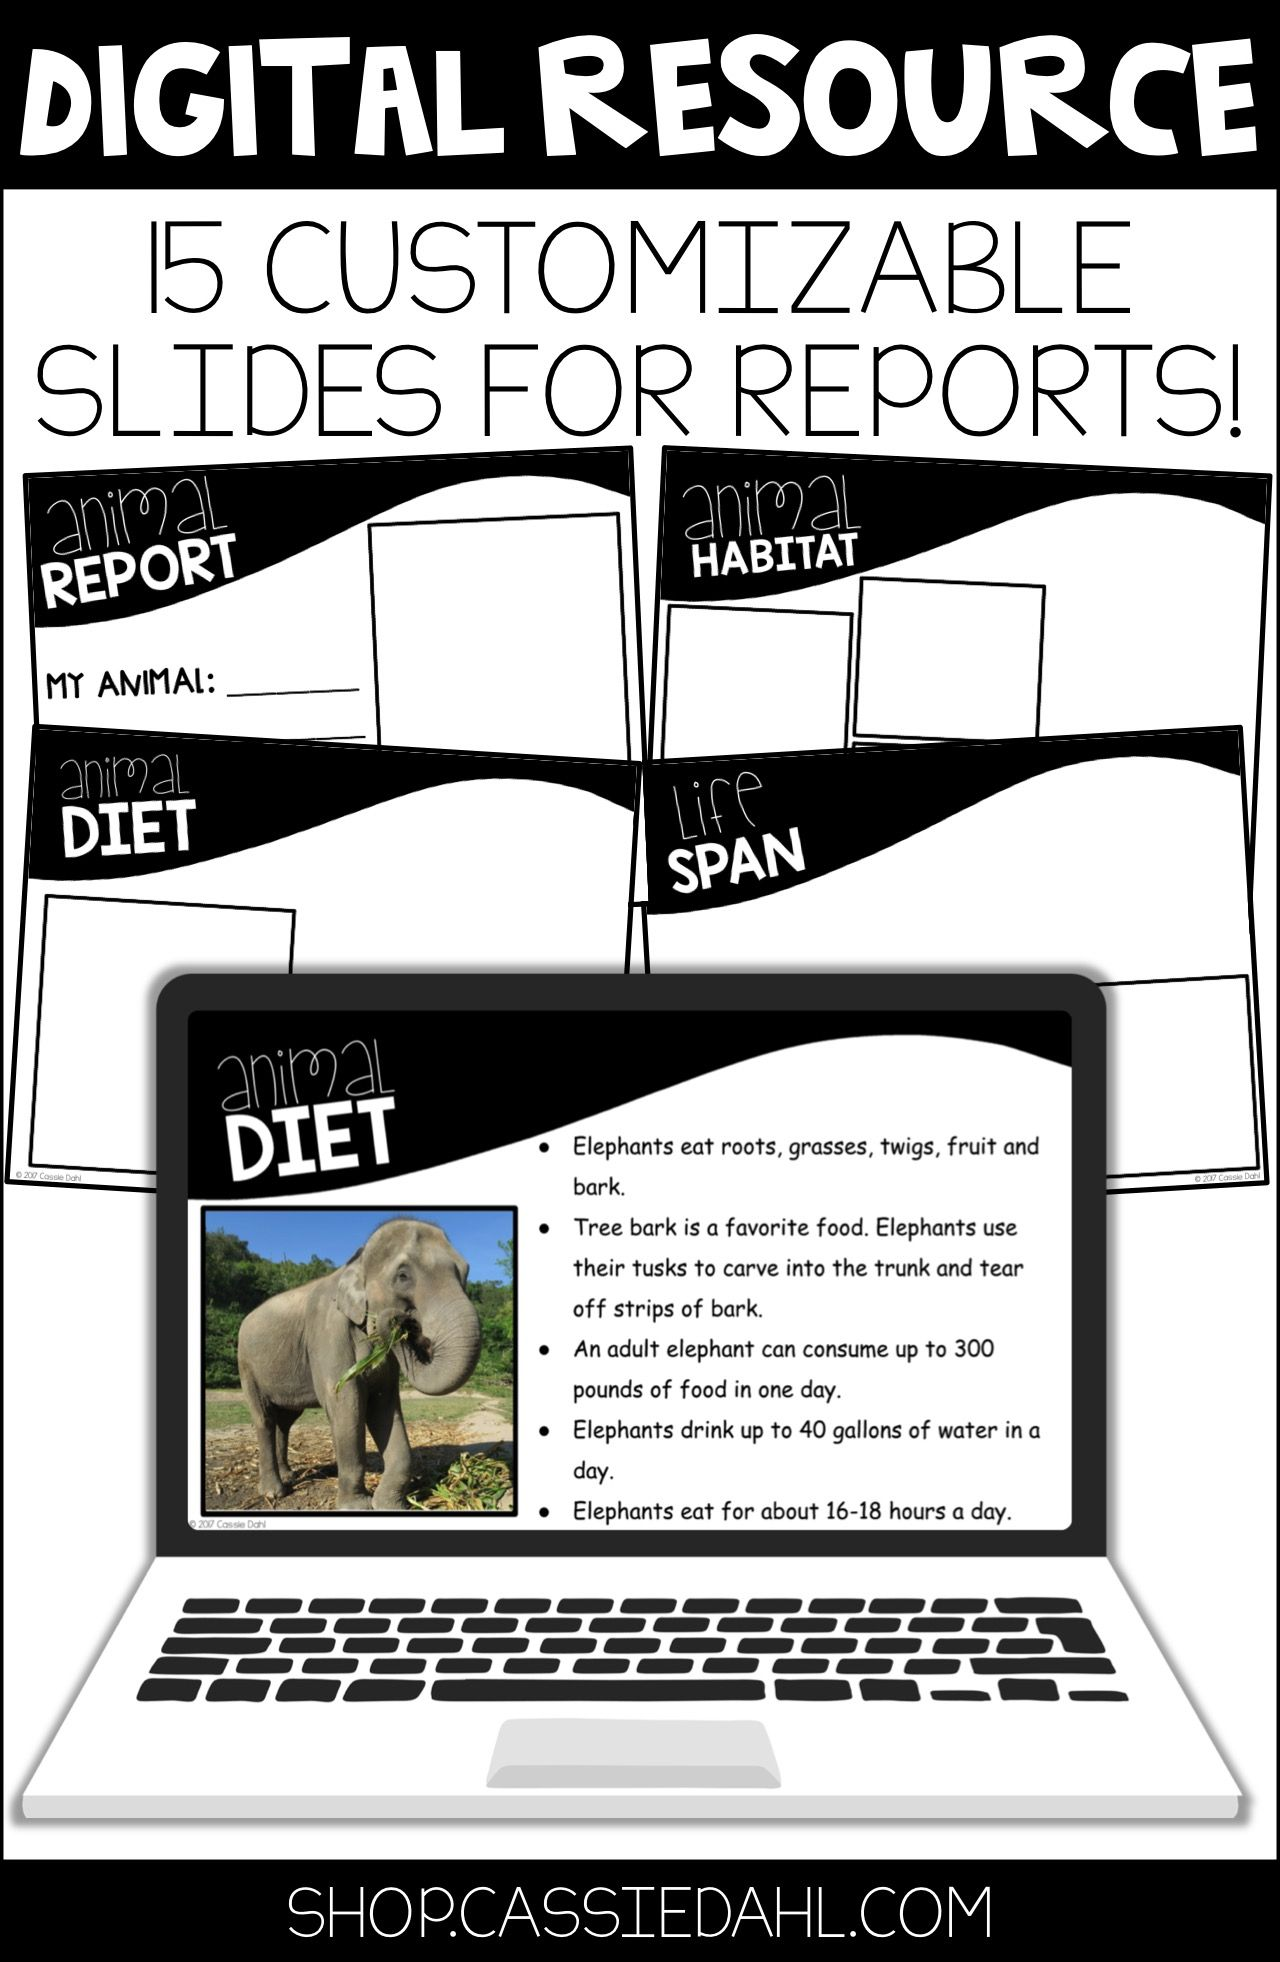 Animal Research Report Digital Templates